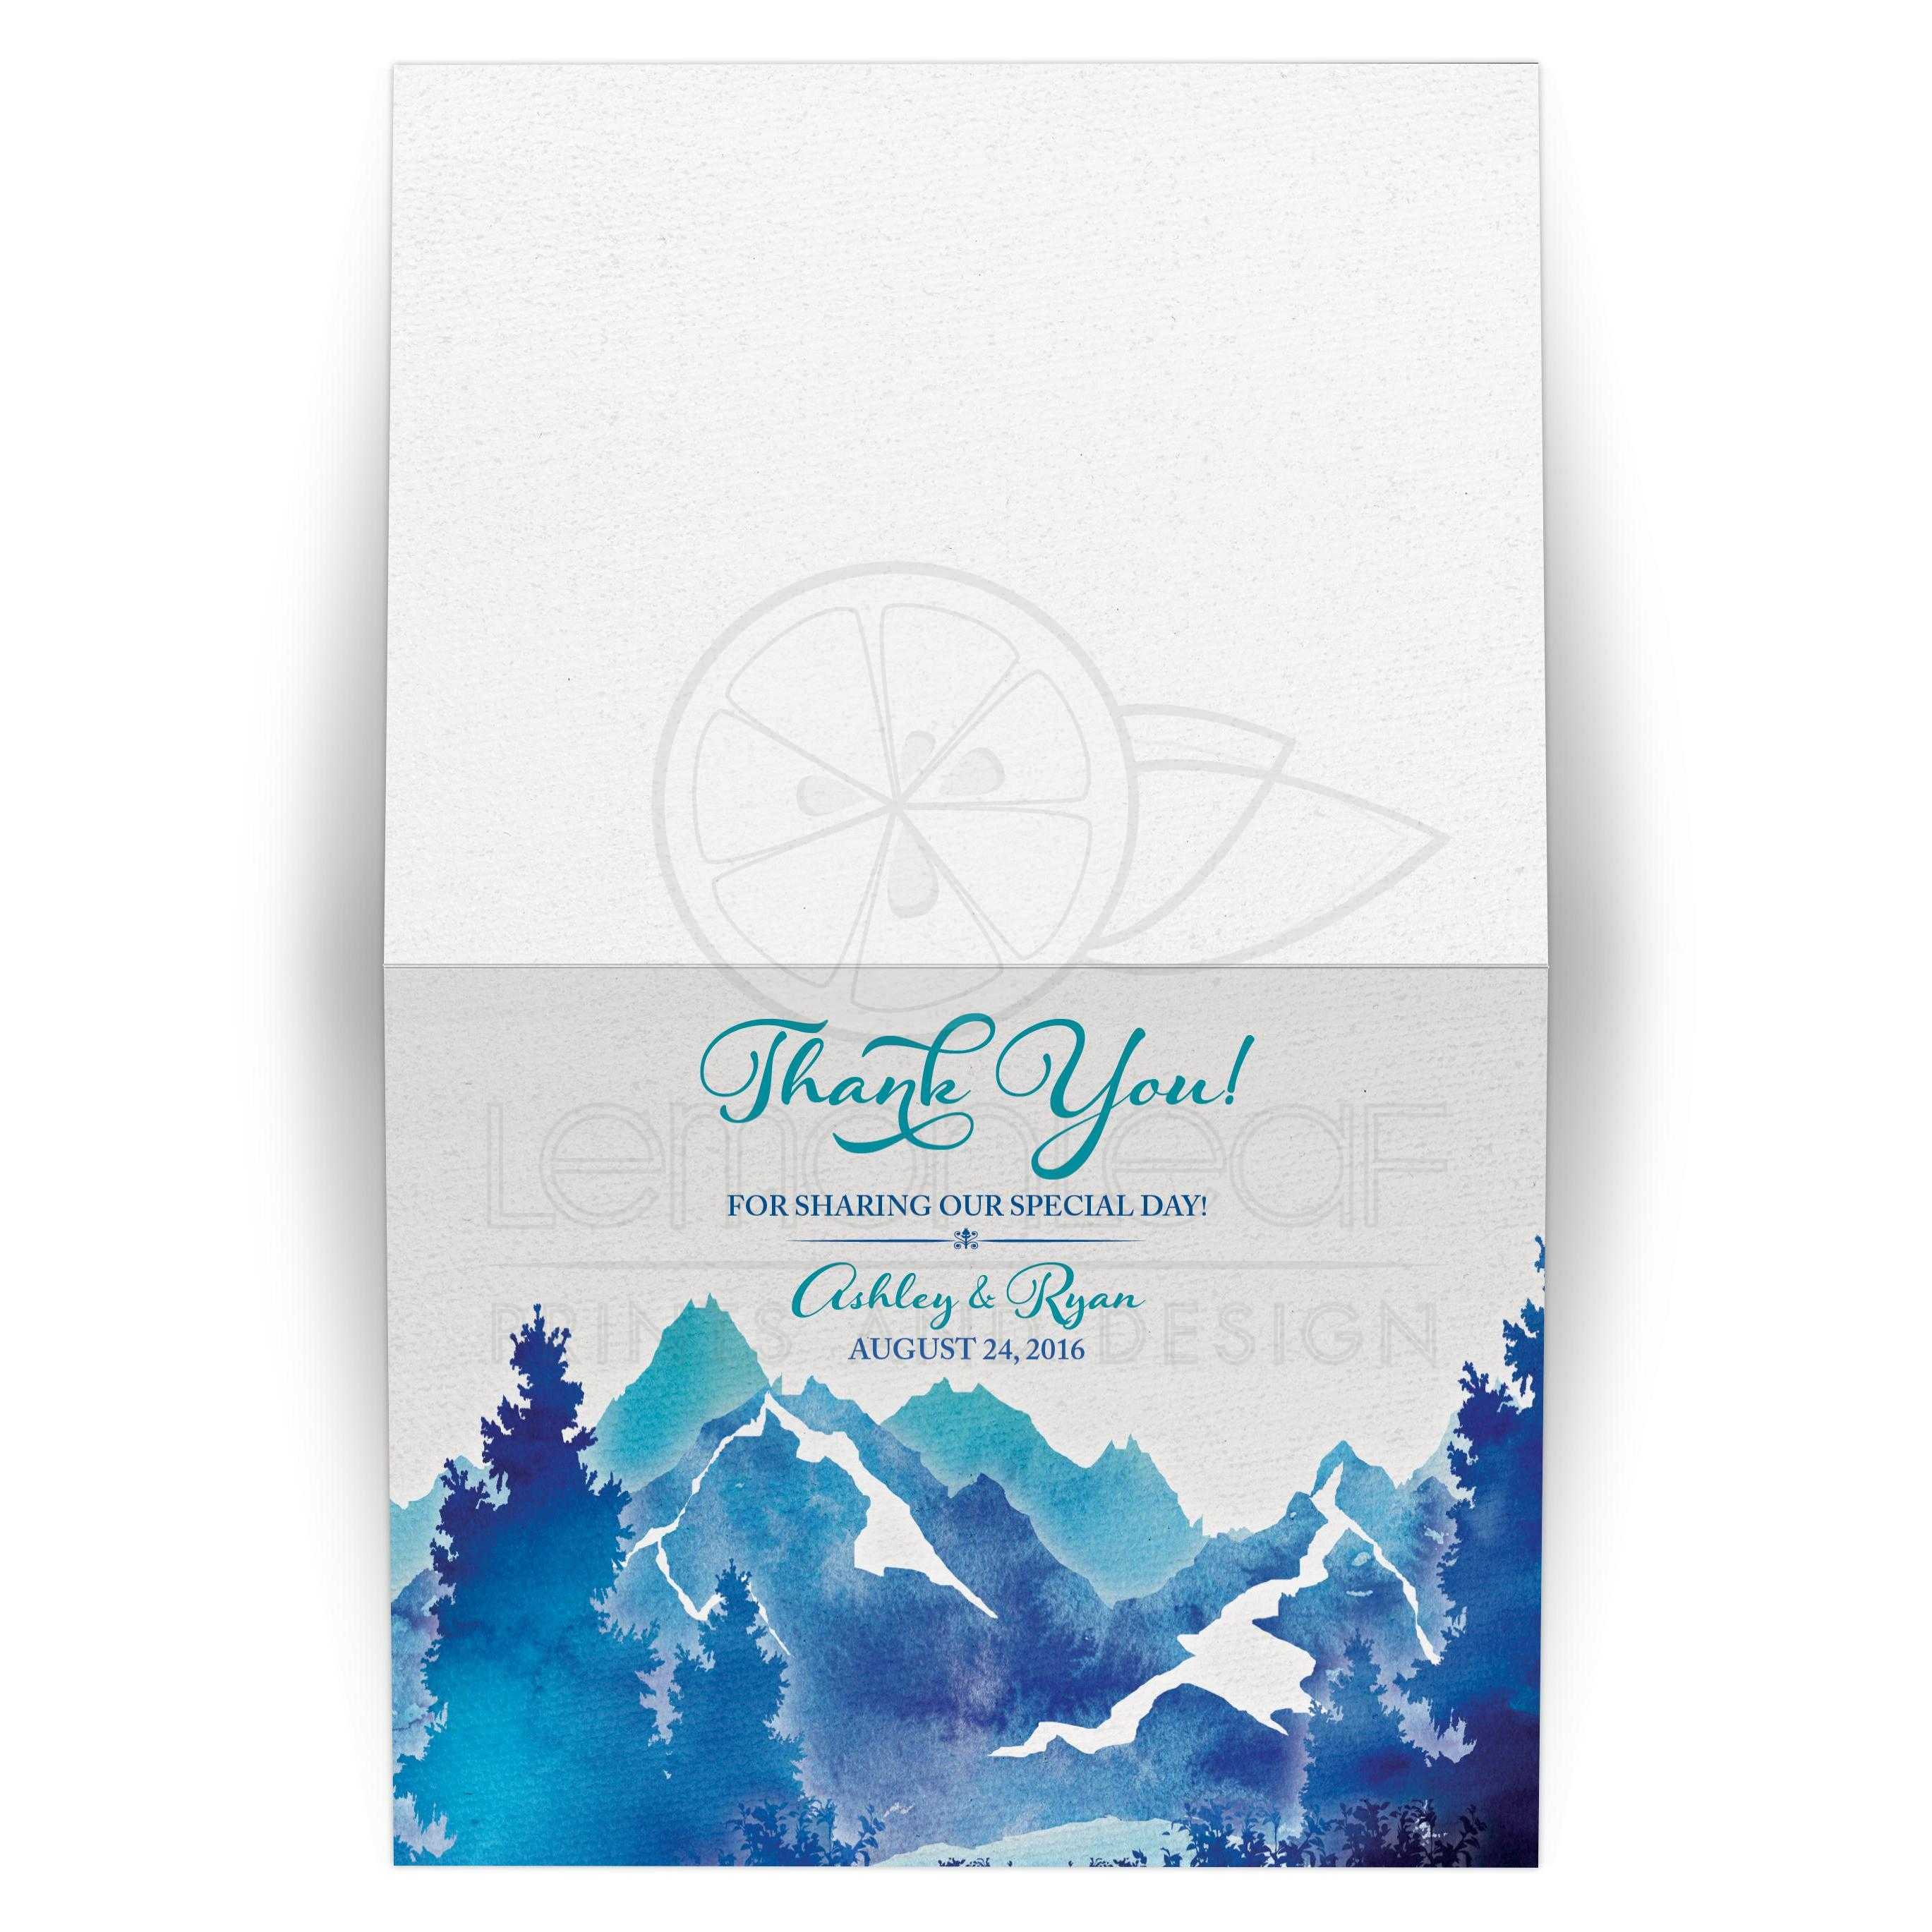 royal blue and turquoise watercolor painting mountain scene wedding thank you card